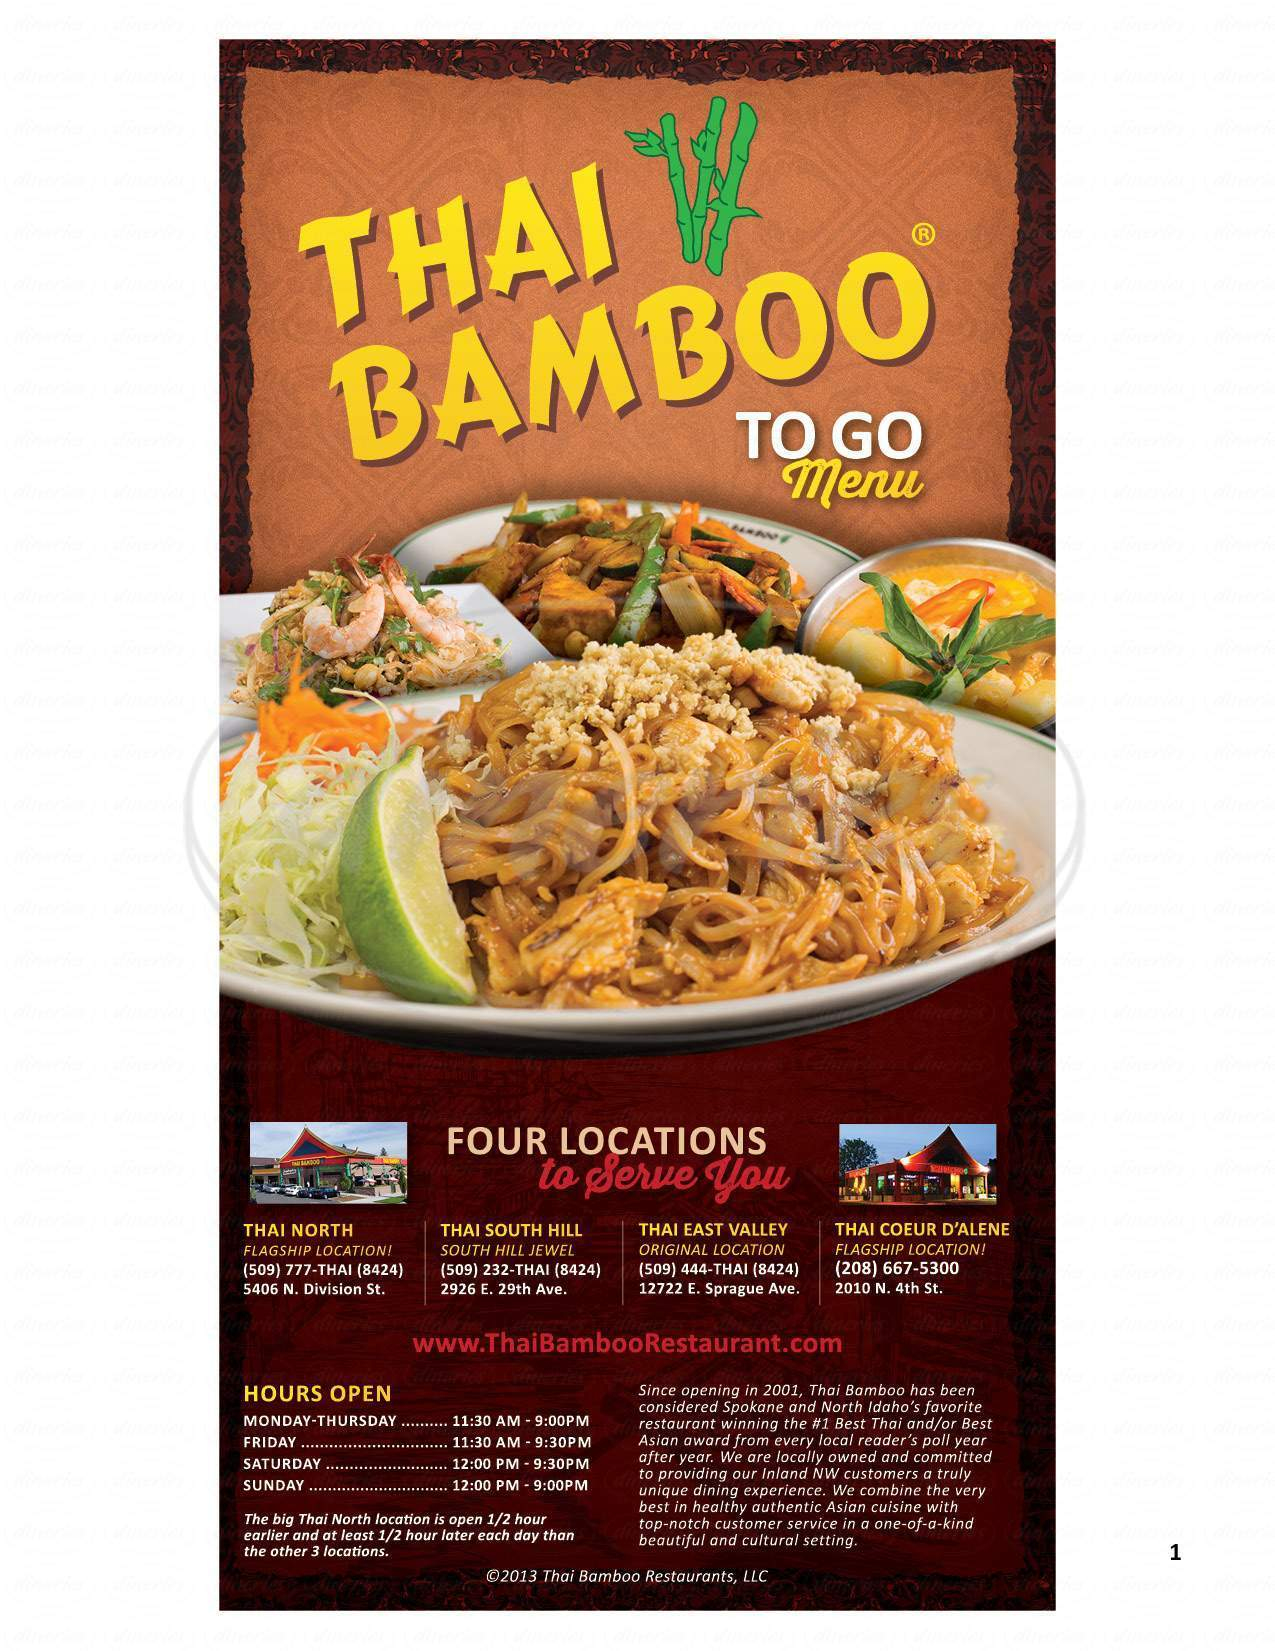 menu for Thai Bamboo